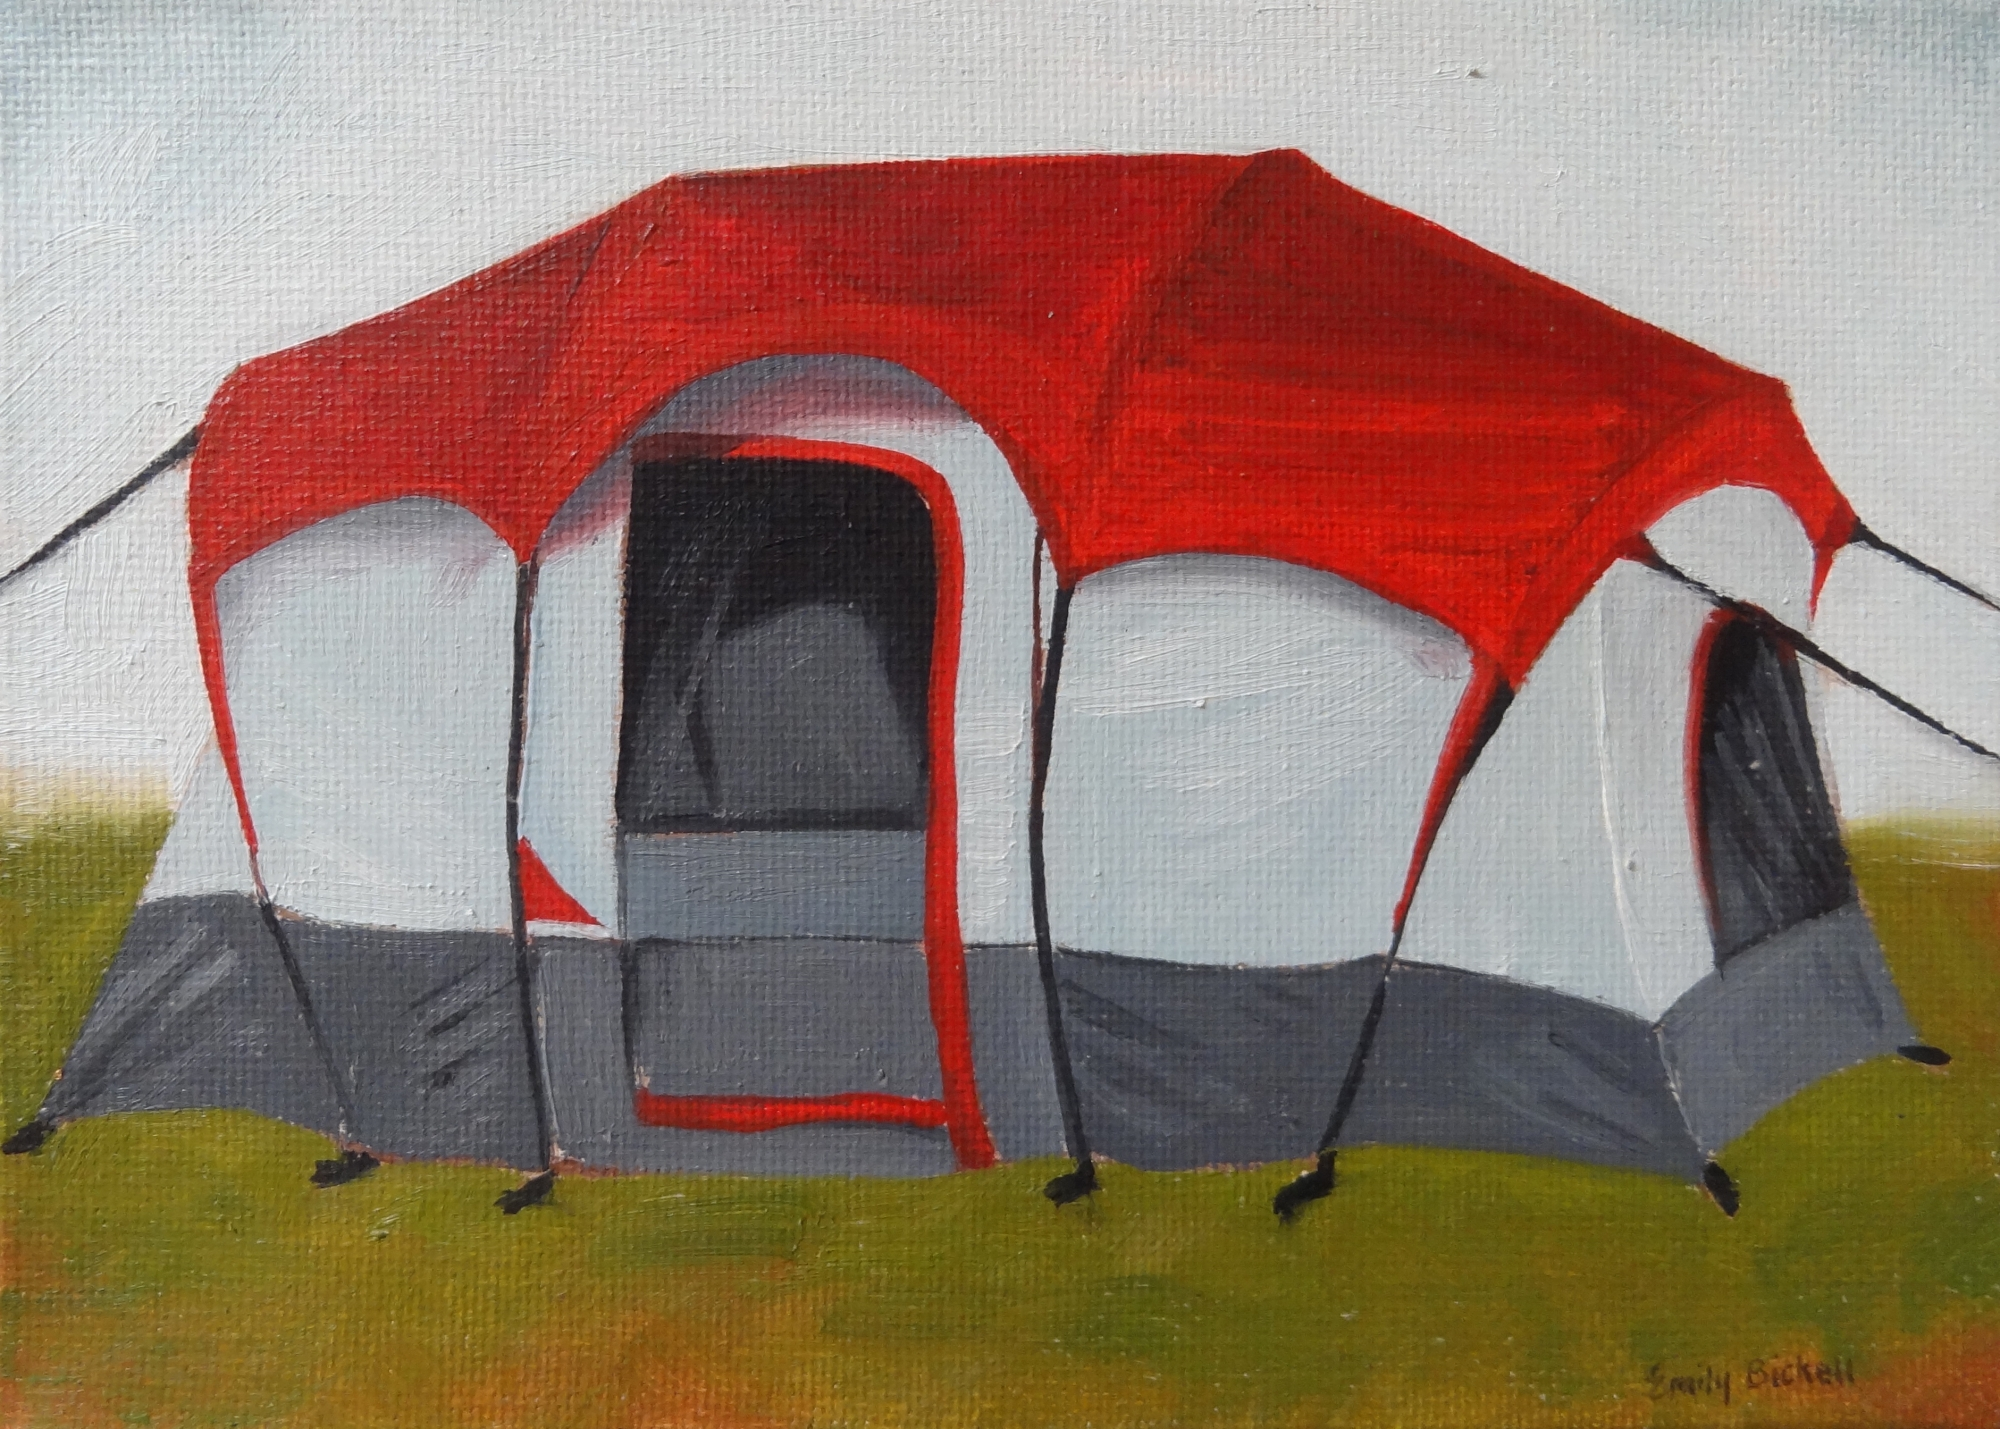 Coleman Tent (red) by Emily Bickell